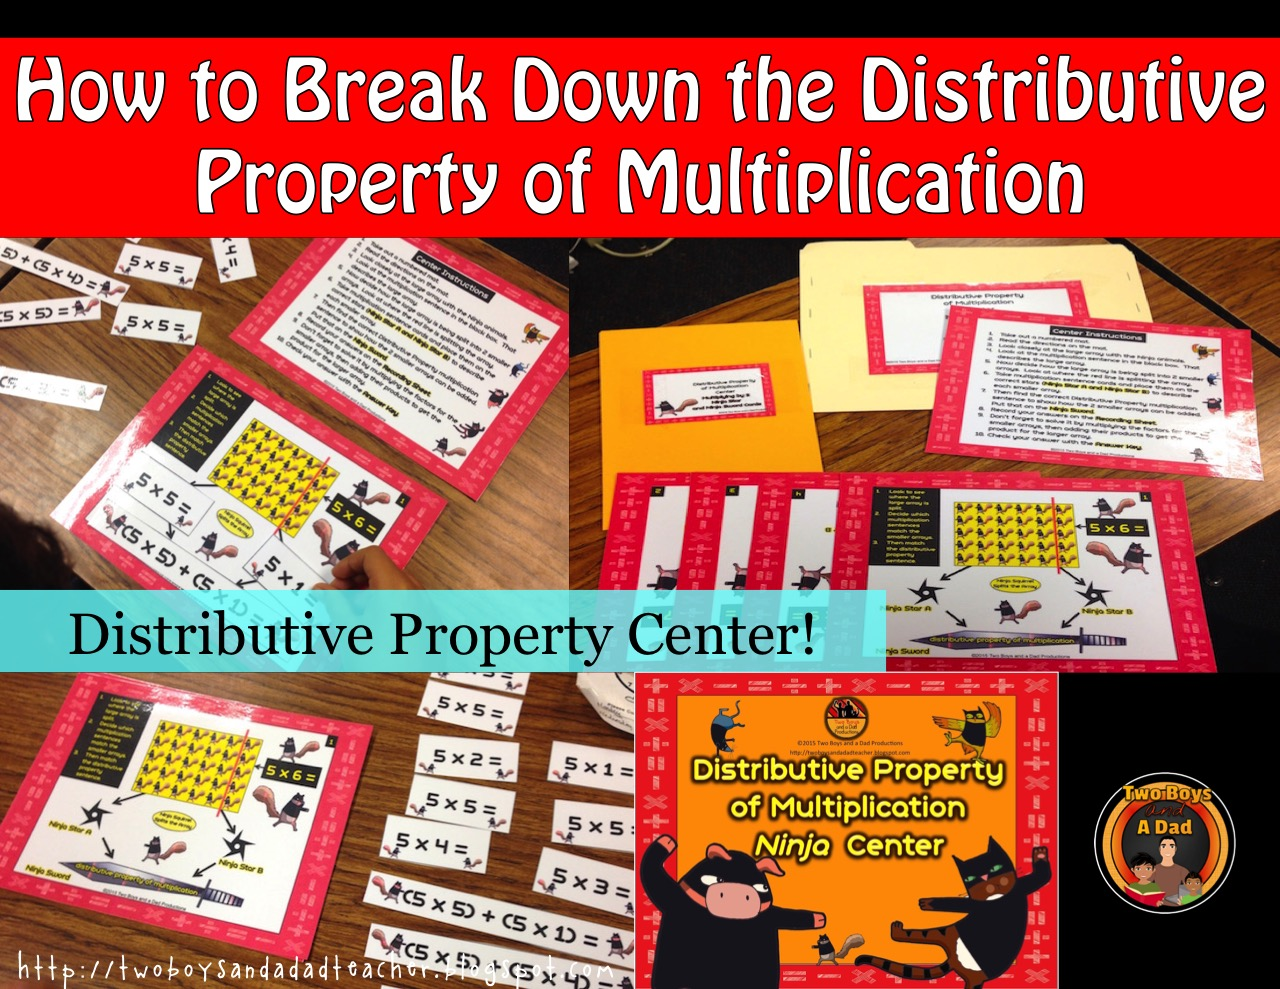 distributive property of multiplication how to break it down two